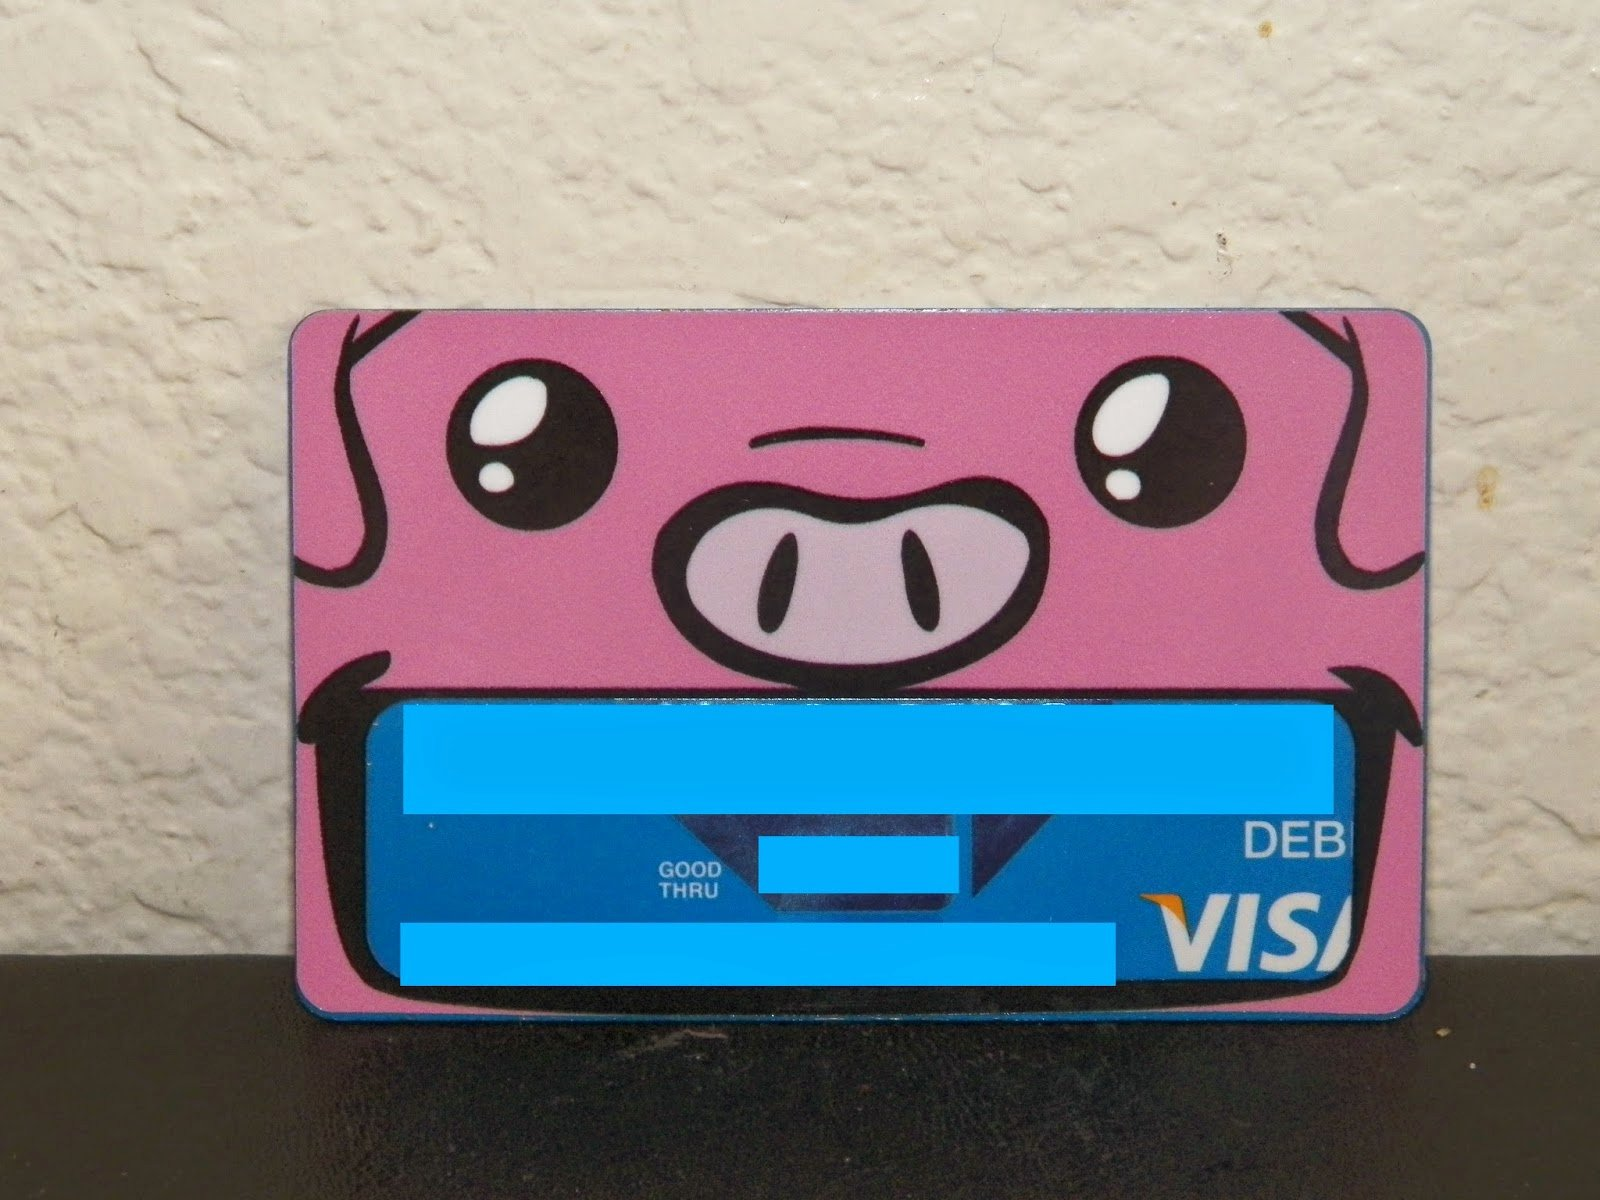 Cool Debit Card Designs Lovely Mygreatfinds Creditcovers Cool and Cute Skins for Credit